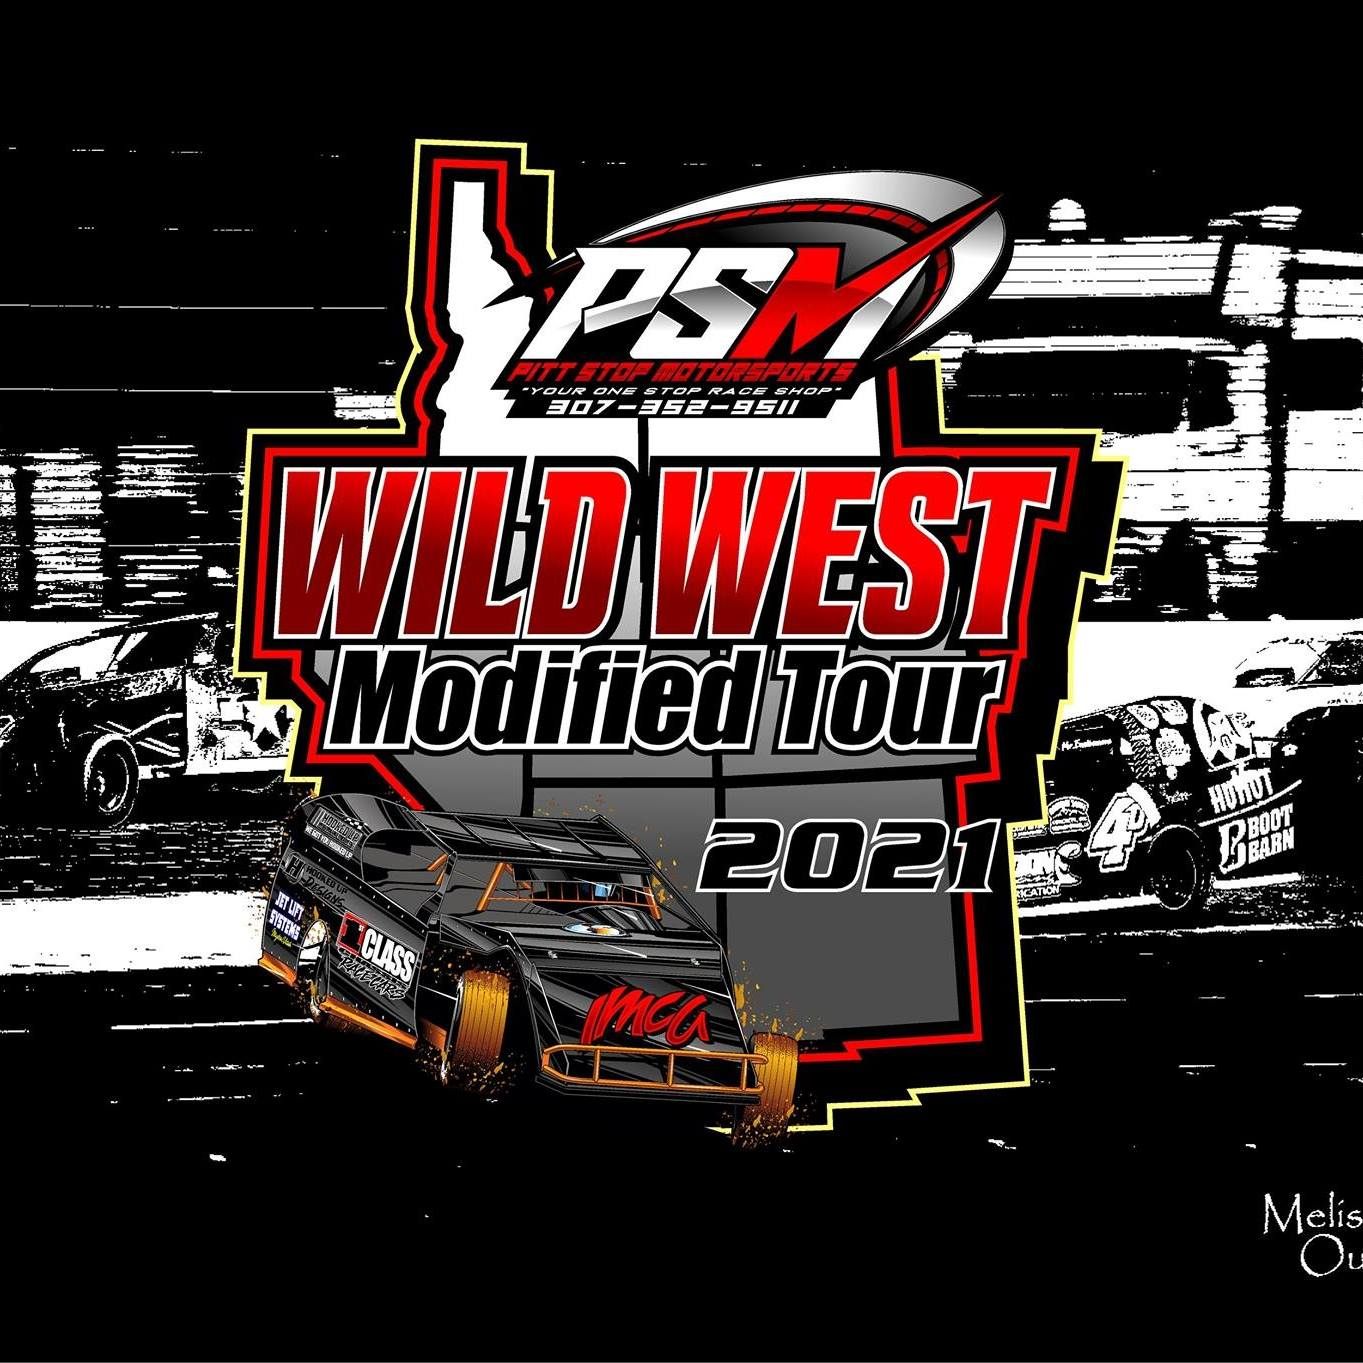 Cocopah dates are Arizona first for Pitt Stop Motorsports IMCA Wild West Tour